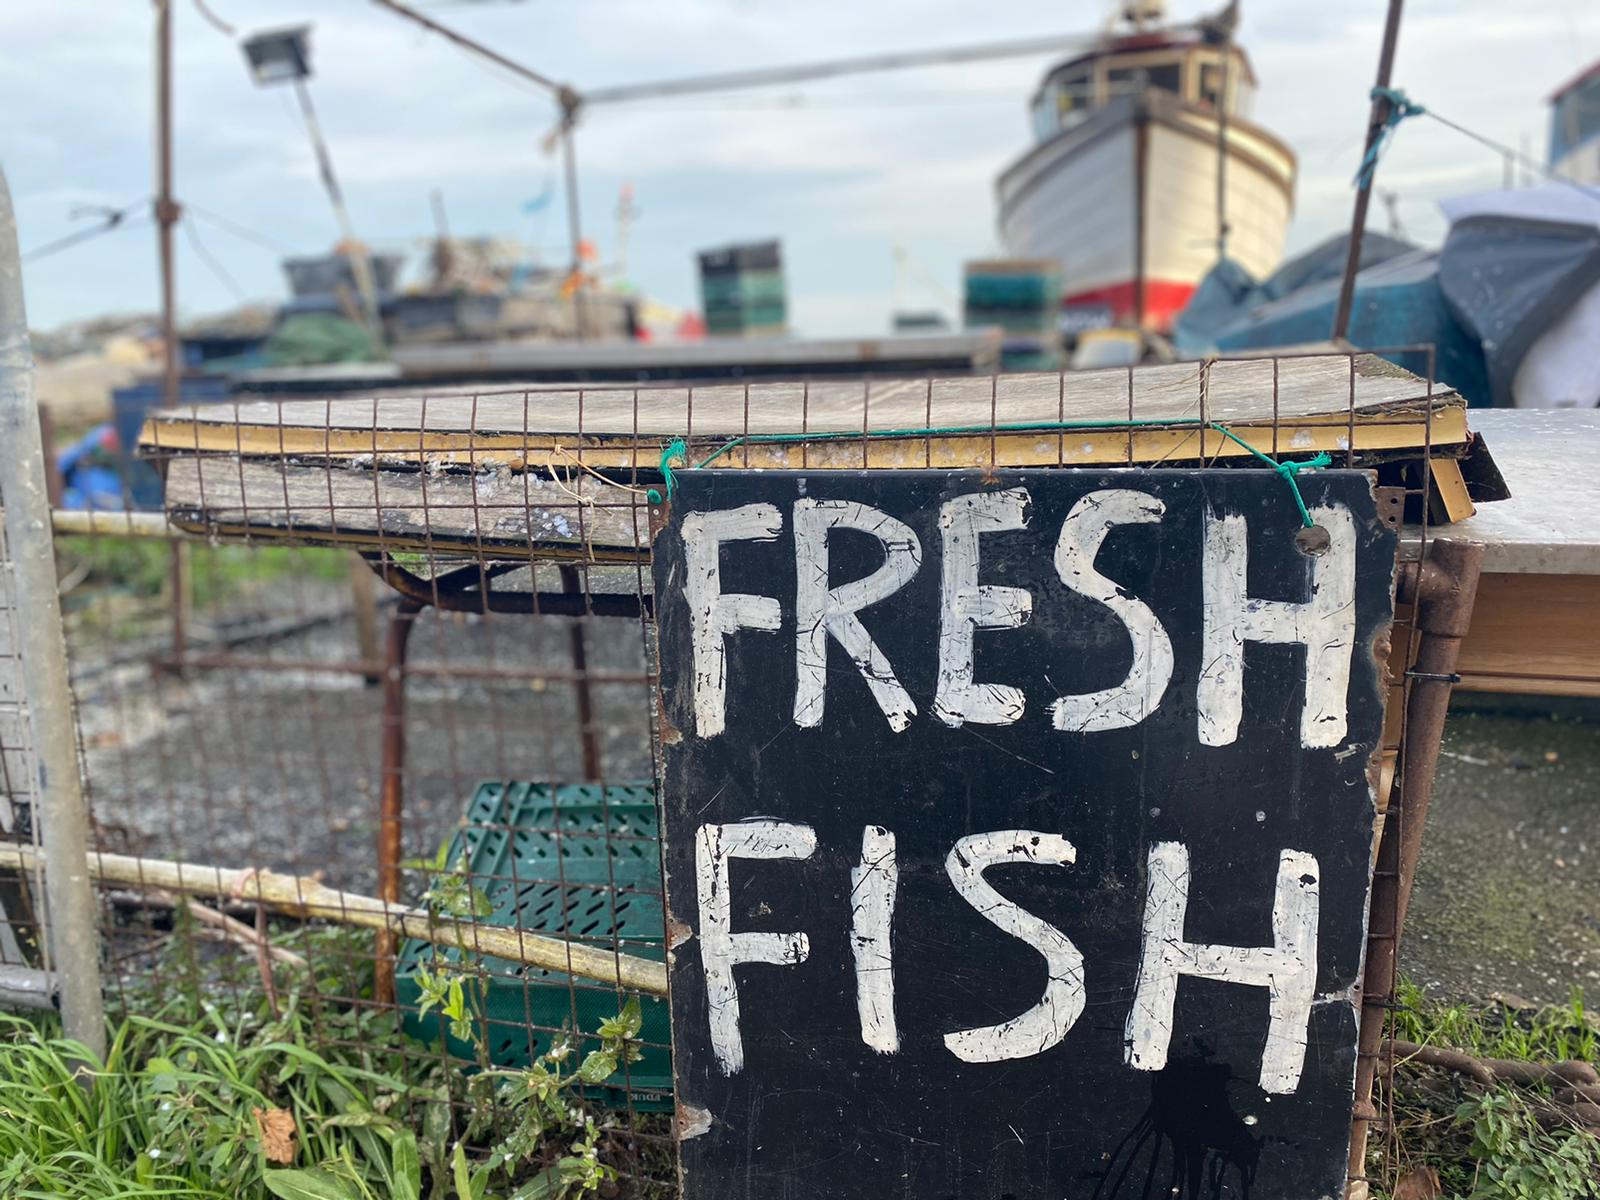 Fresh Fish billboard sign outside harbour in Kent, England